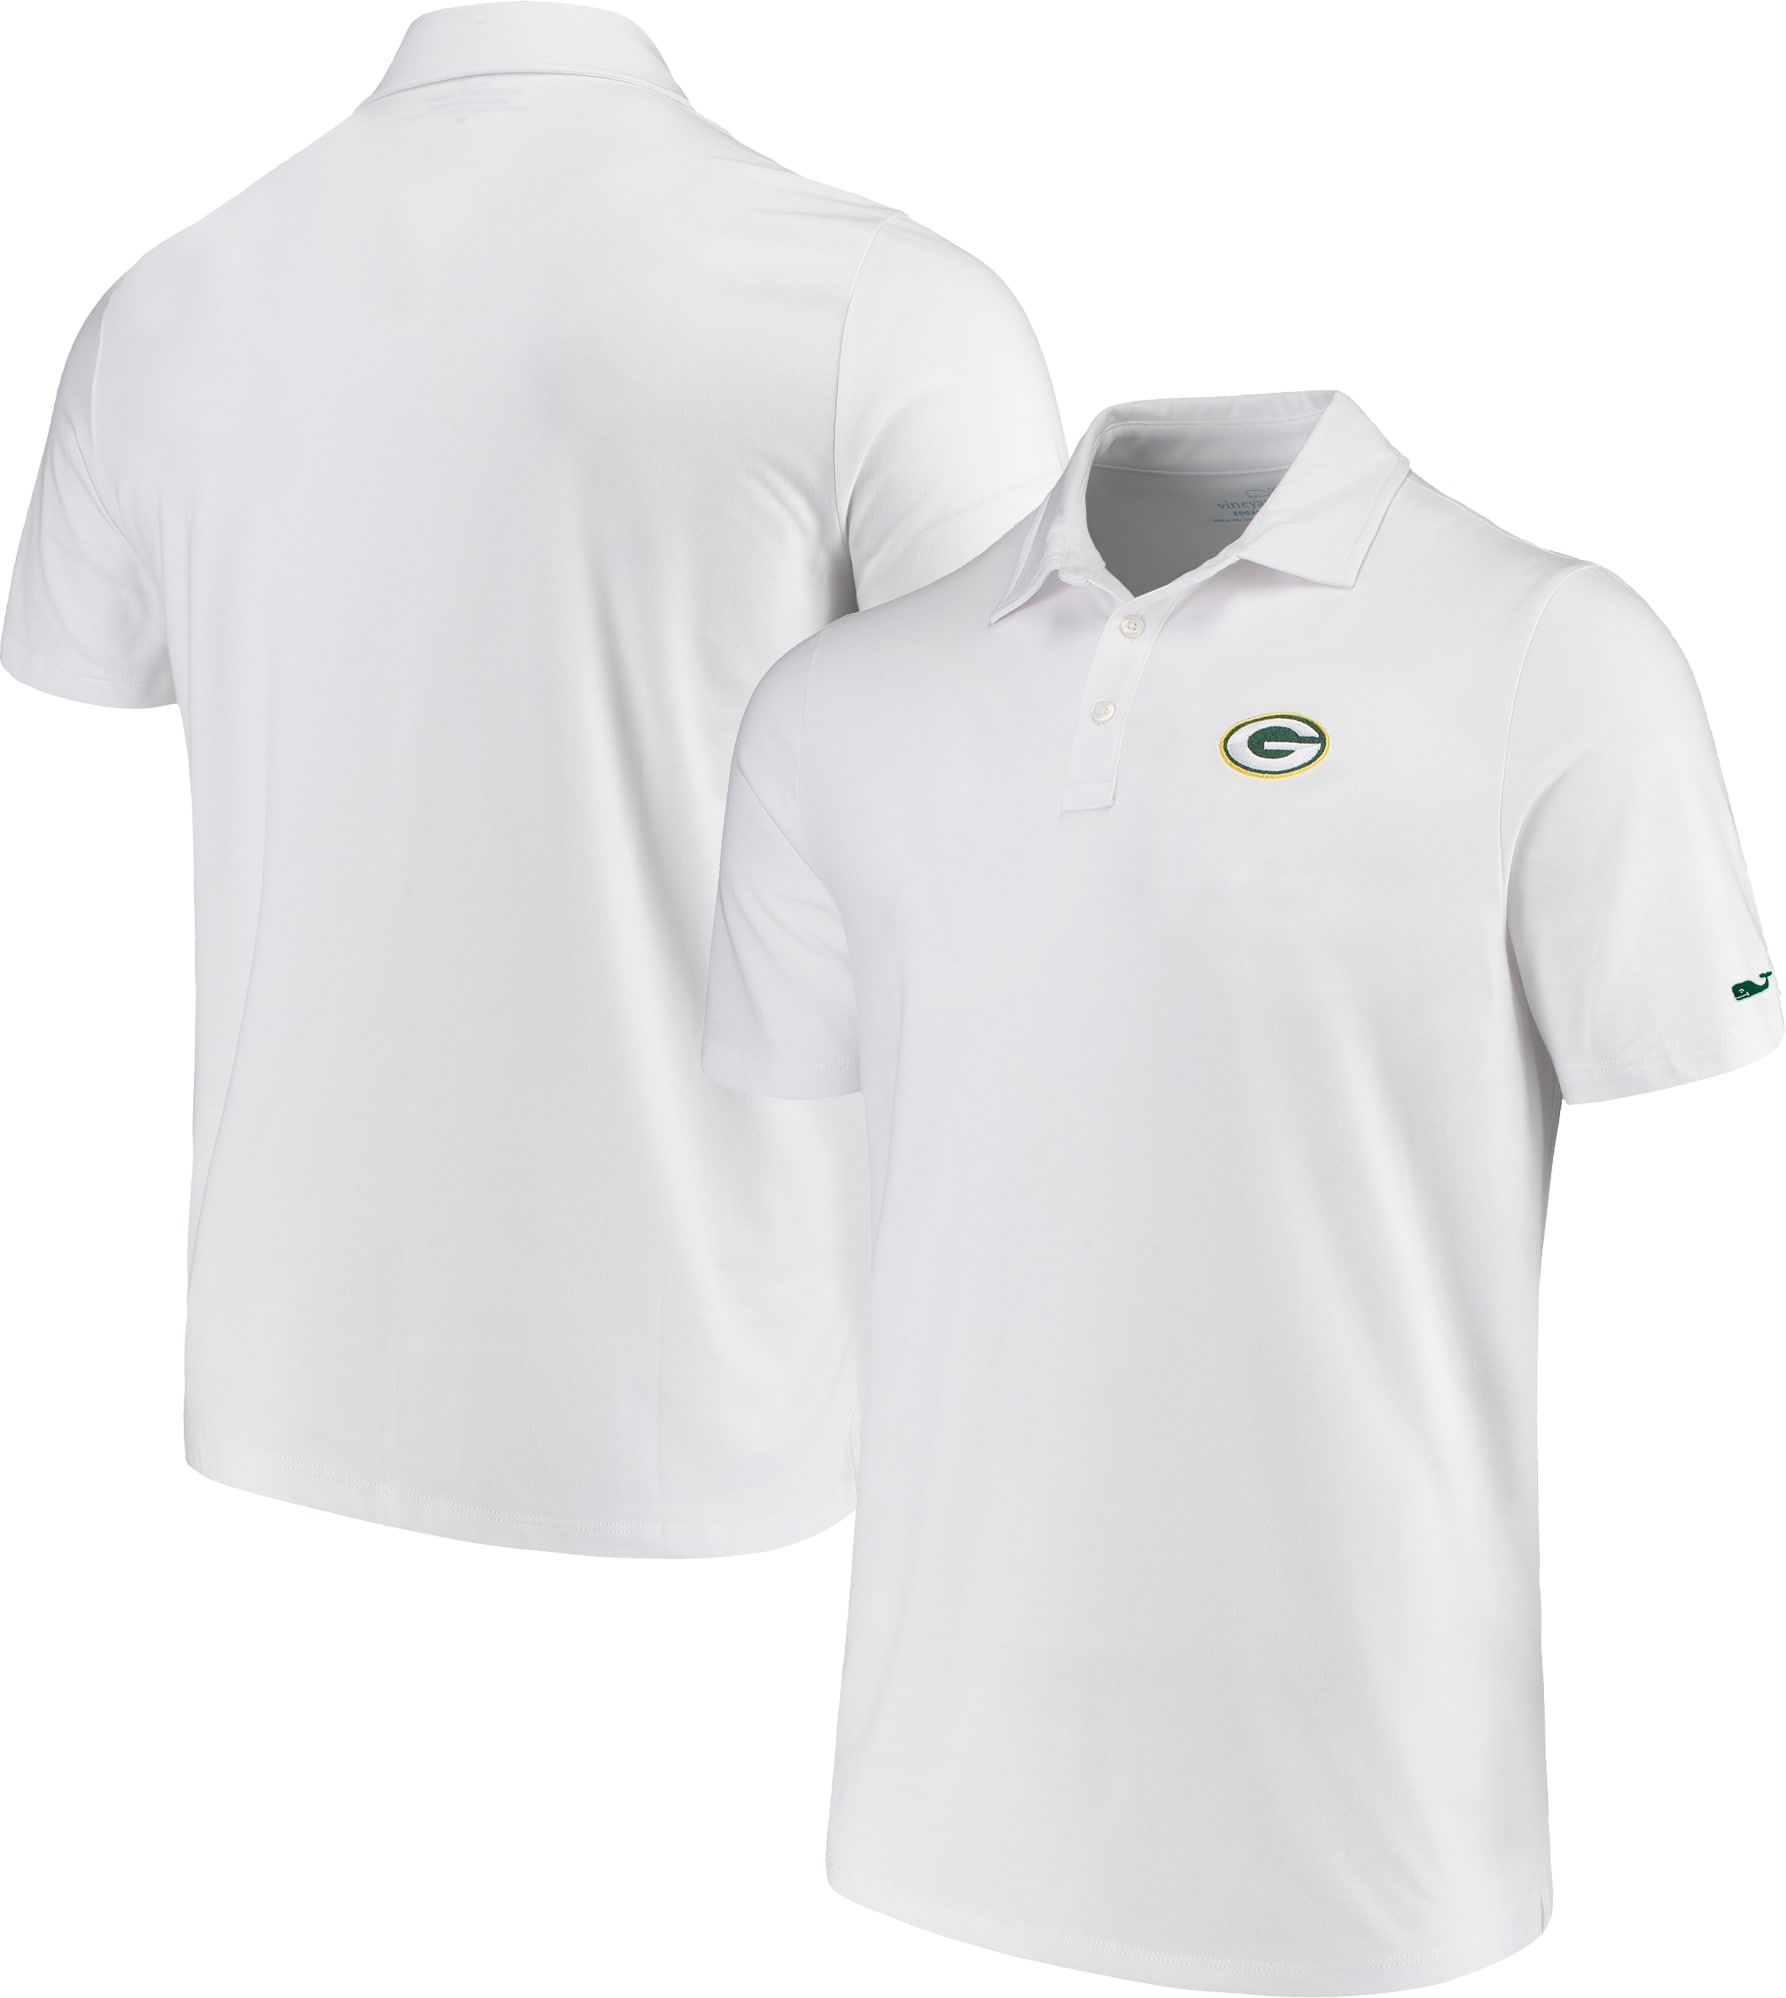 Green Bay Packers Vineyard Vines Edgartown Tri-Blend Polo - White